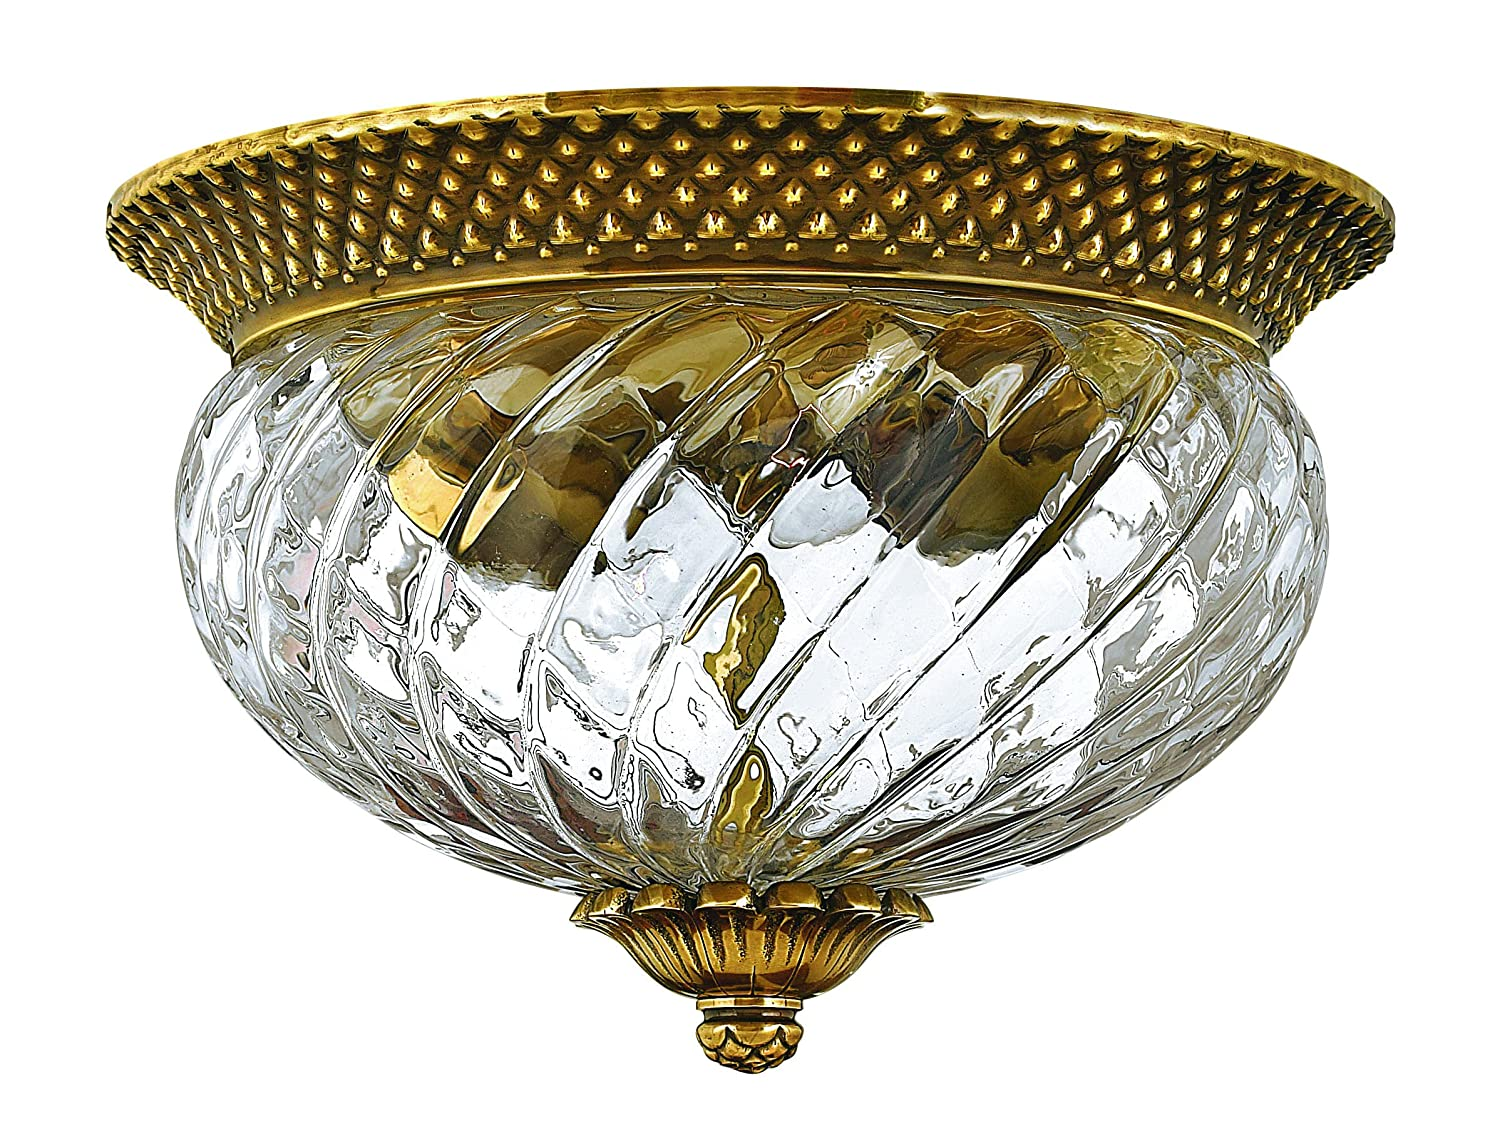 Hinkley 4102BB Traditional Two Light Flush Mount from Plantation collection in Brassfinish - Flush Mount Ceiling Light Fixtures - Amazon.com  sc 1 st  Amazon.com & Hinkley 4102BB Traditional Two Light Flush Mount from Plantation ...